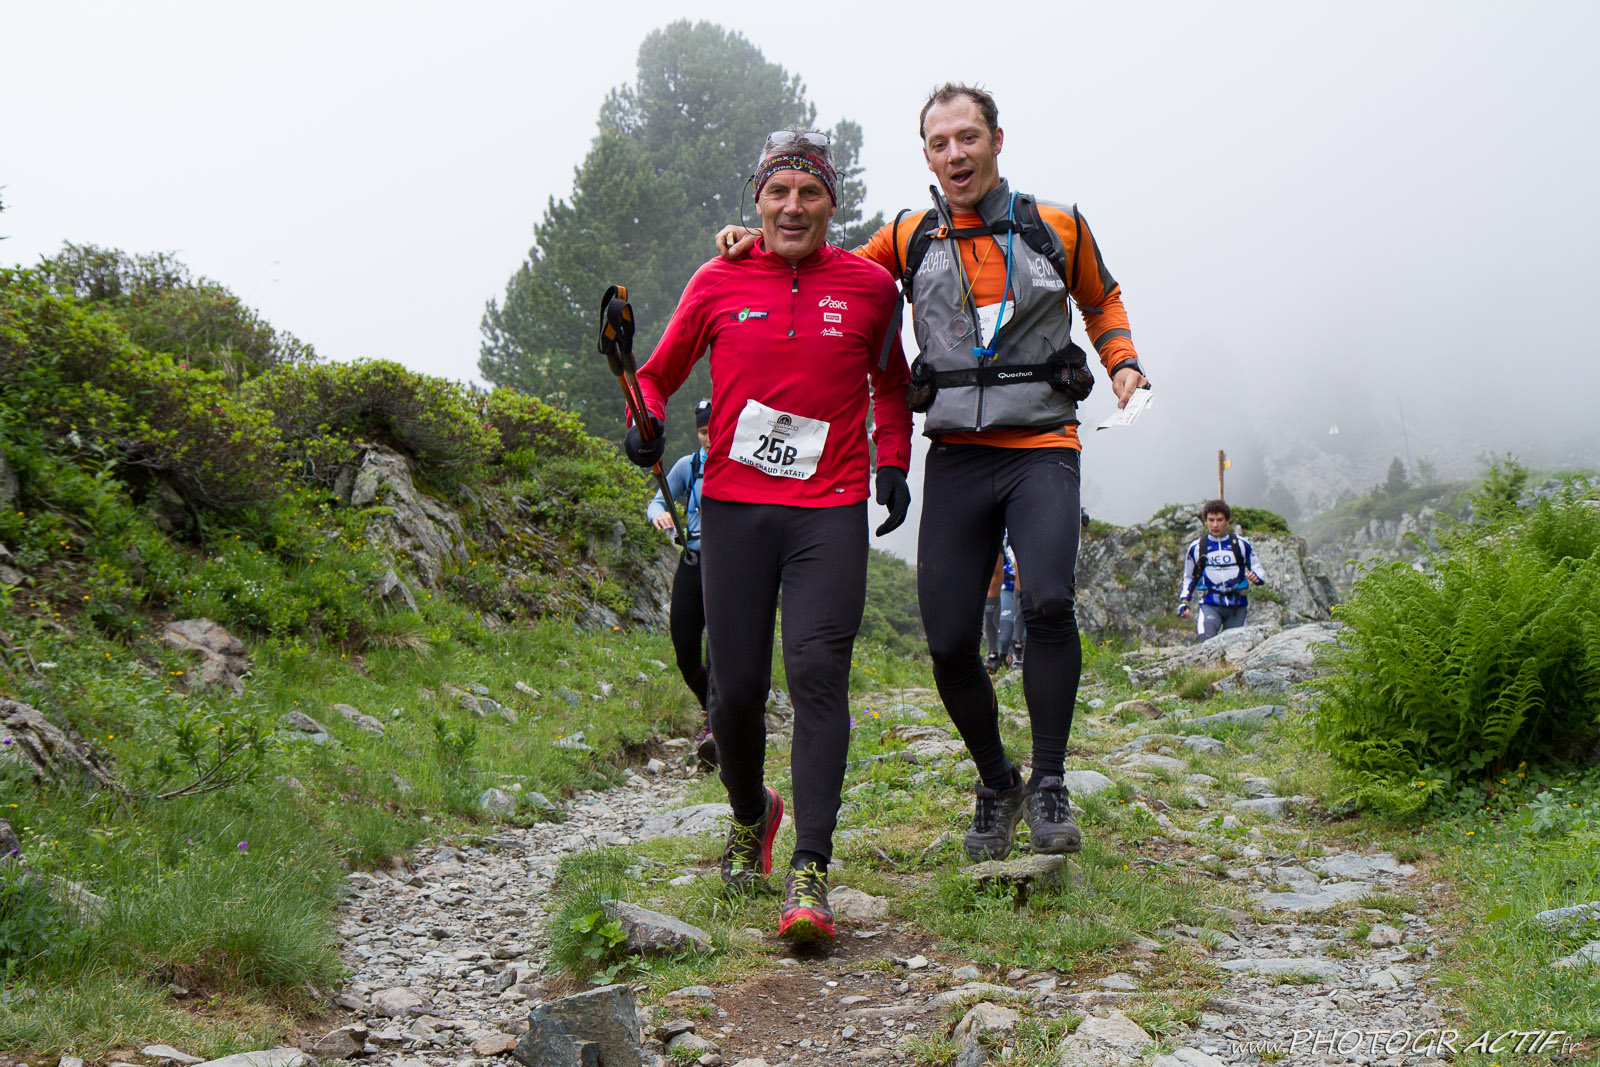 Raid Chauds Patates 2016 Decouverte (76)